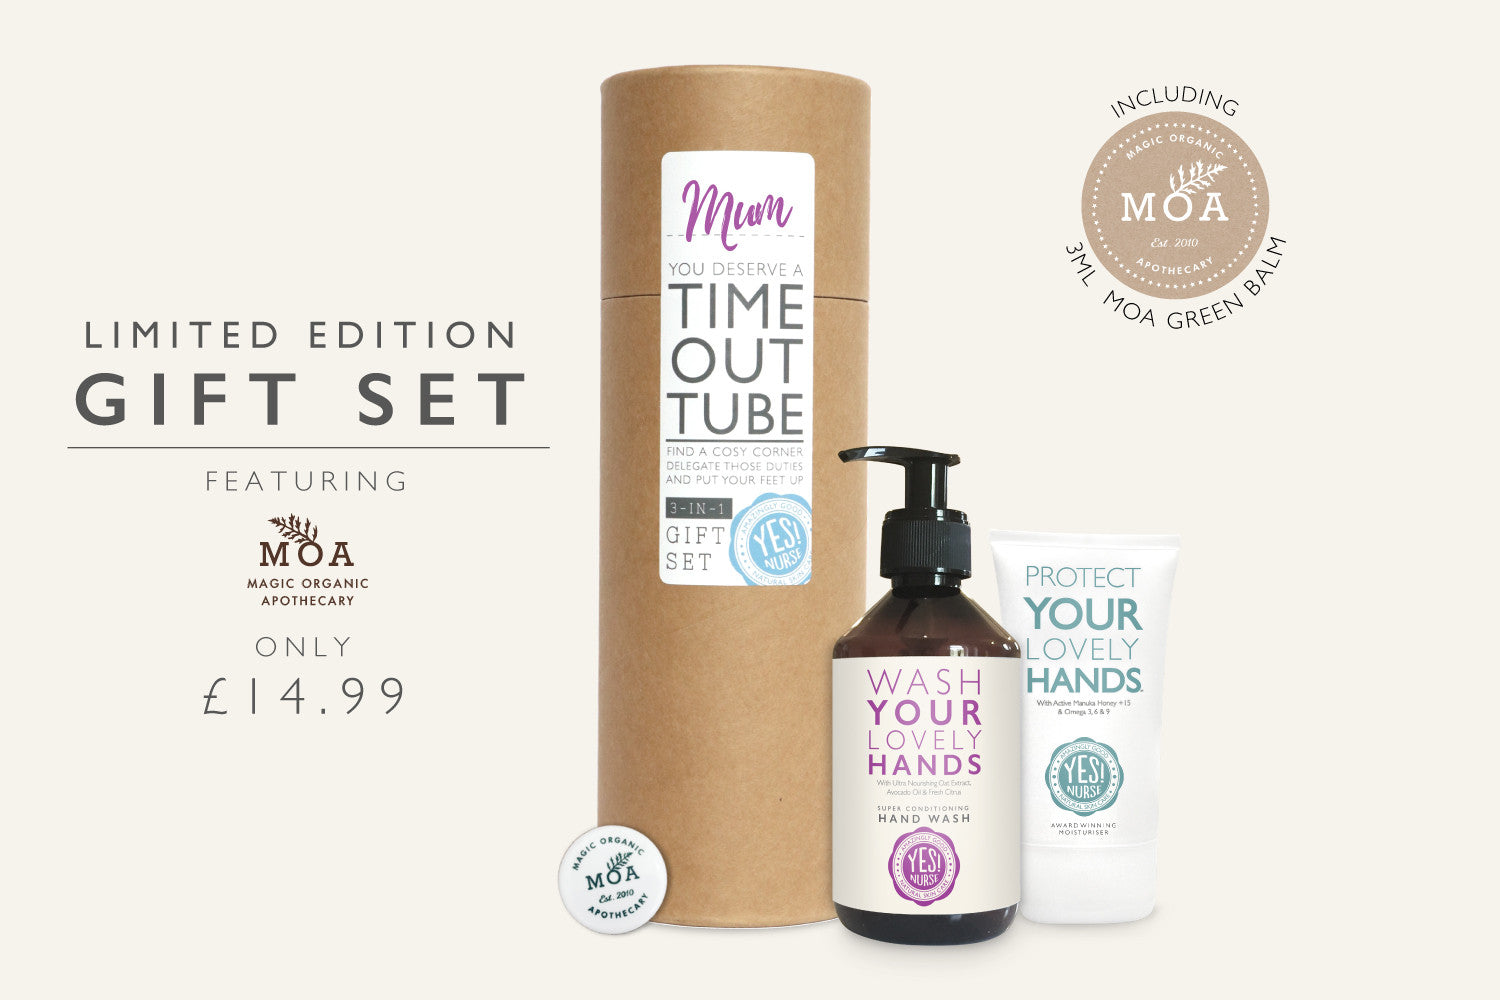 Limited Edition Gift Set - Featuring Moa Green Balm